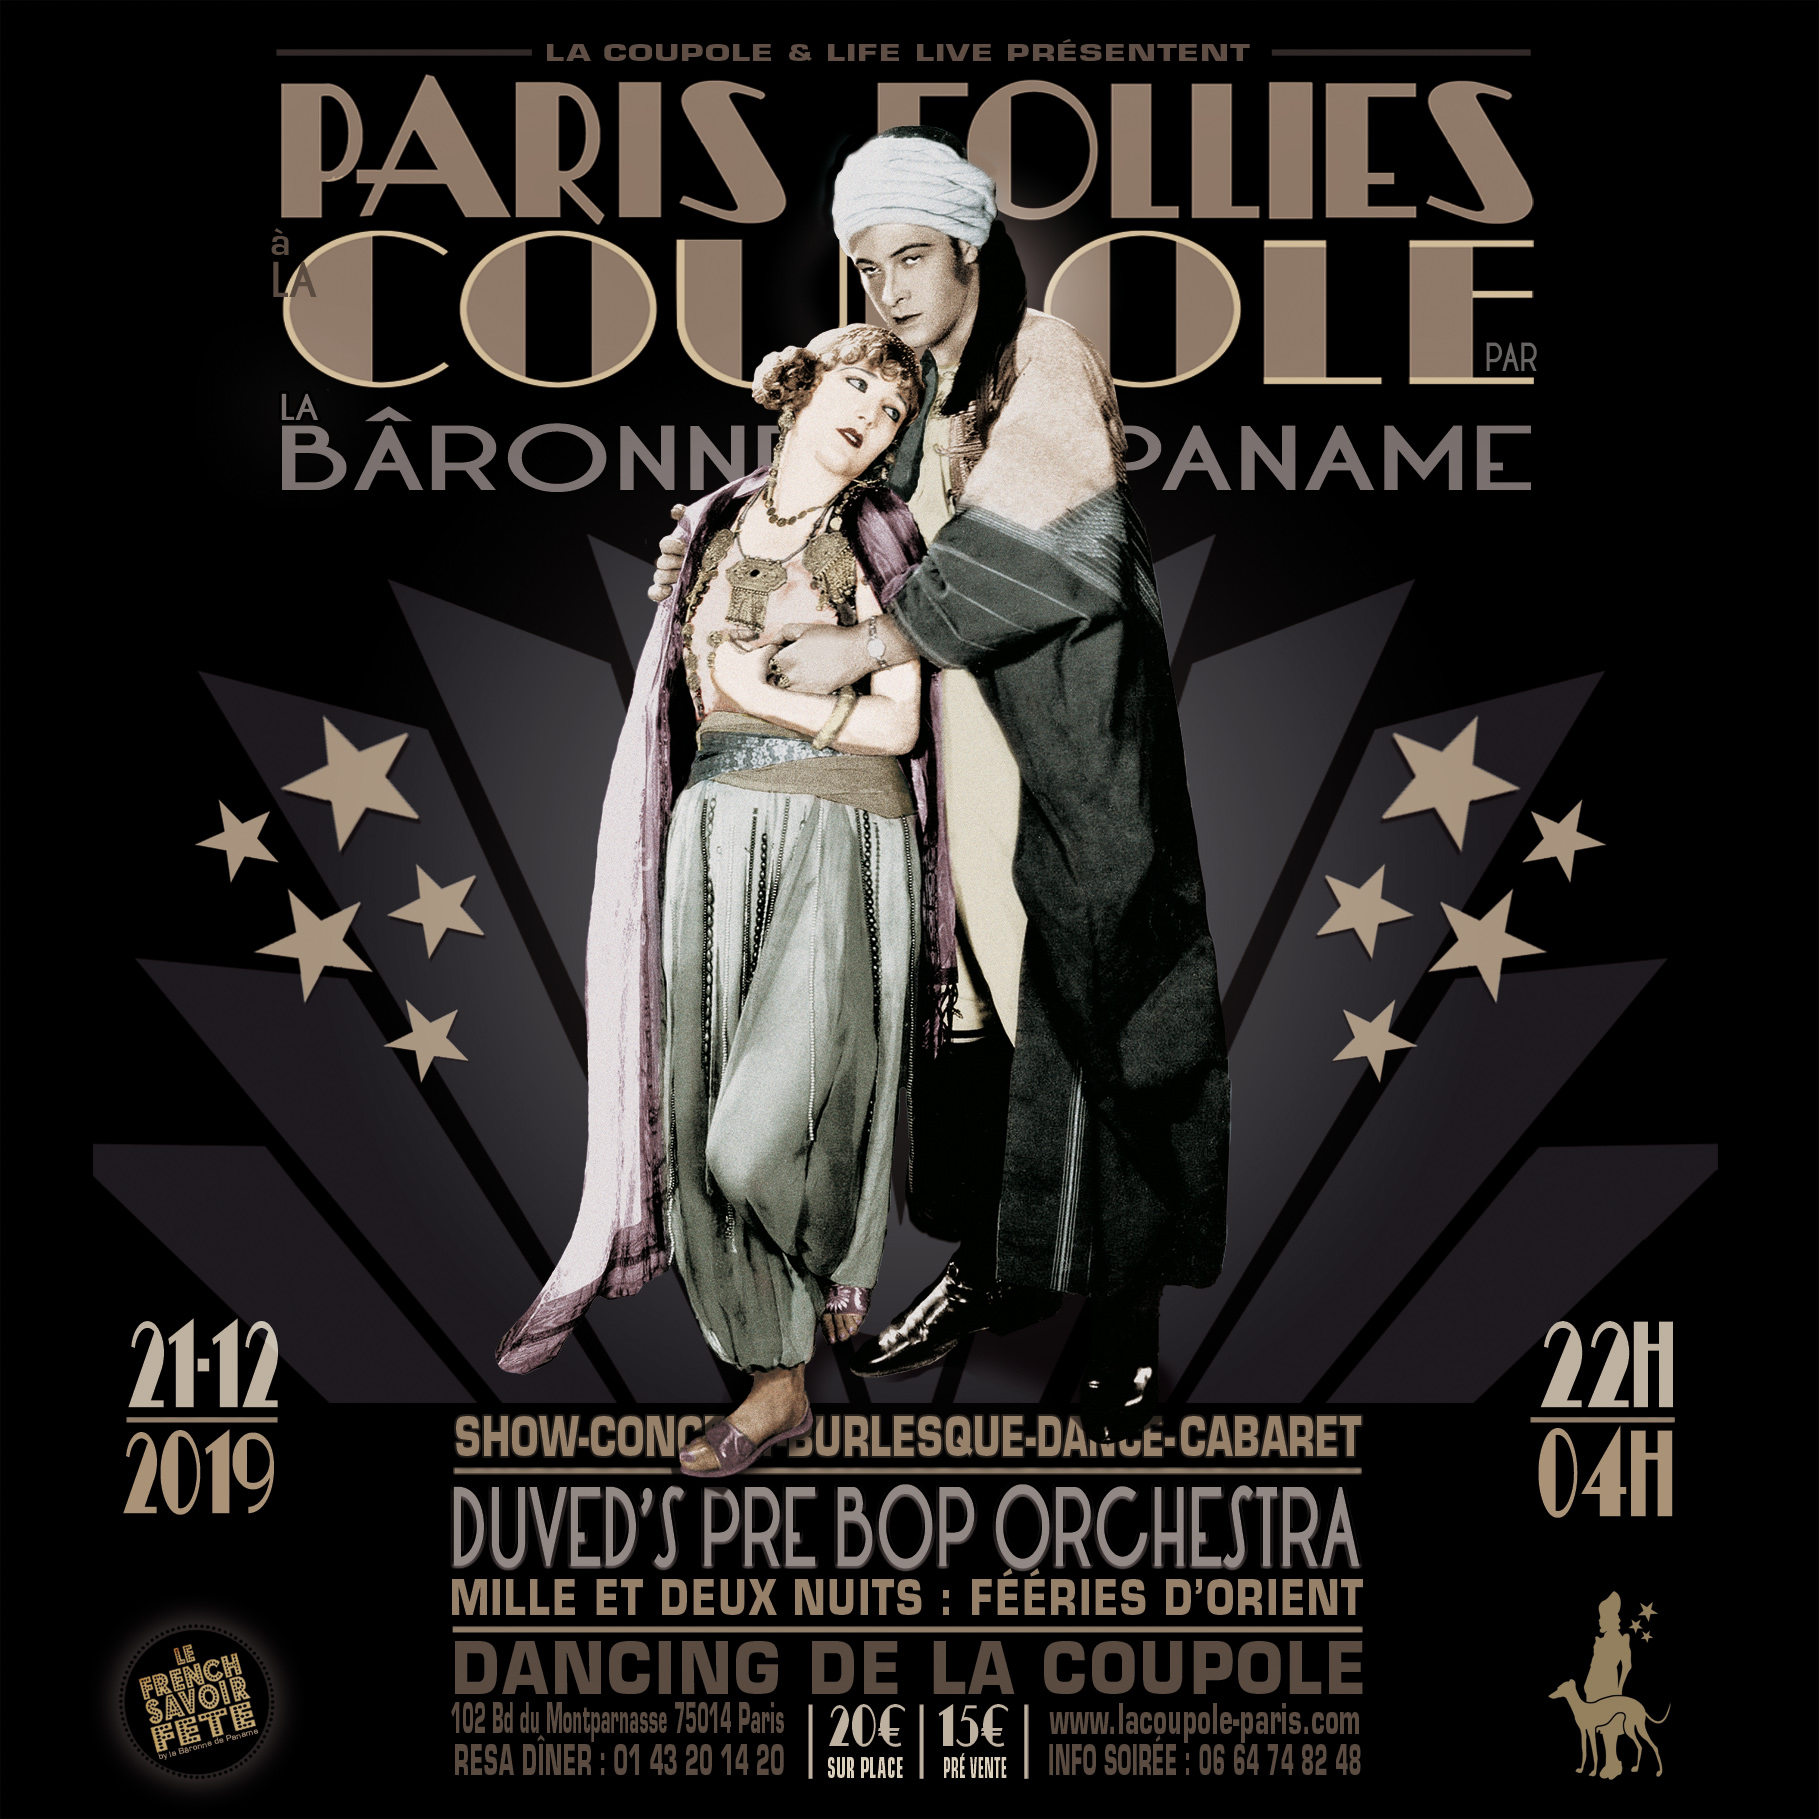 Paris Follies 21 décembre 2019